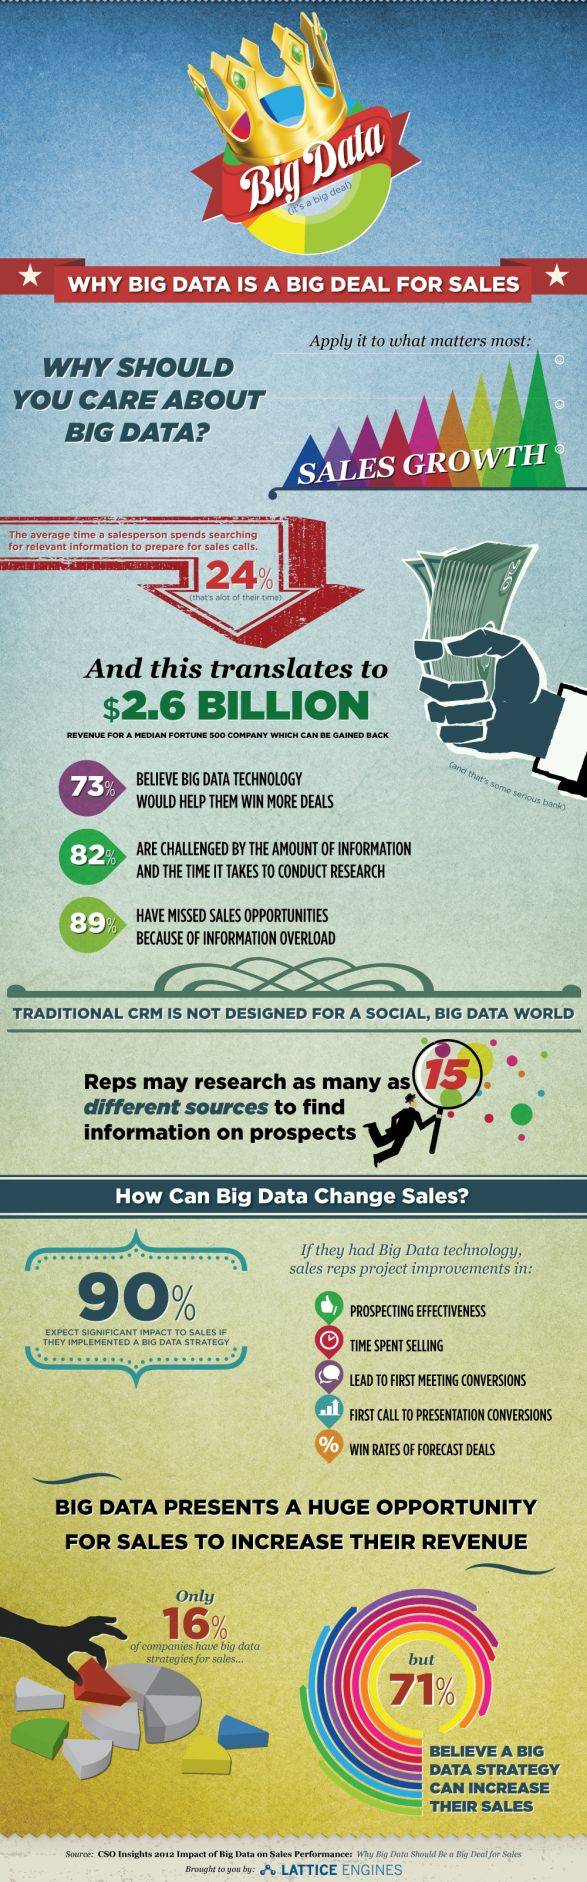 Why Big Data is a Big Deal for Sales: New Infographic